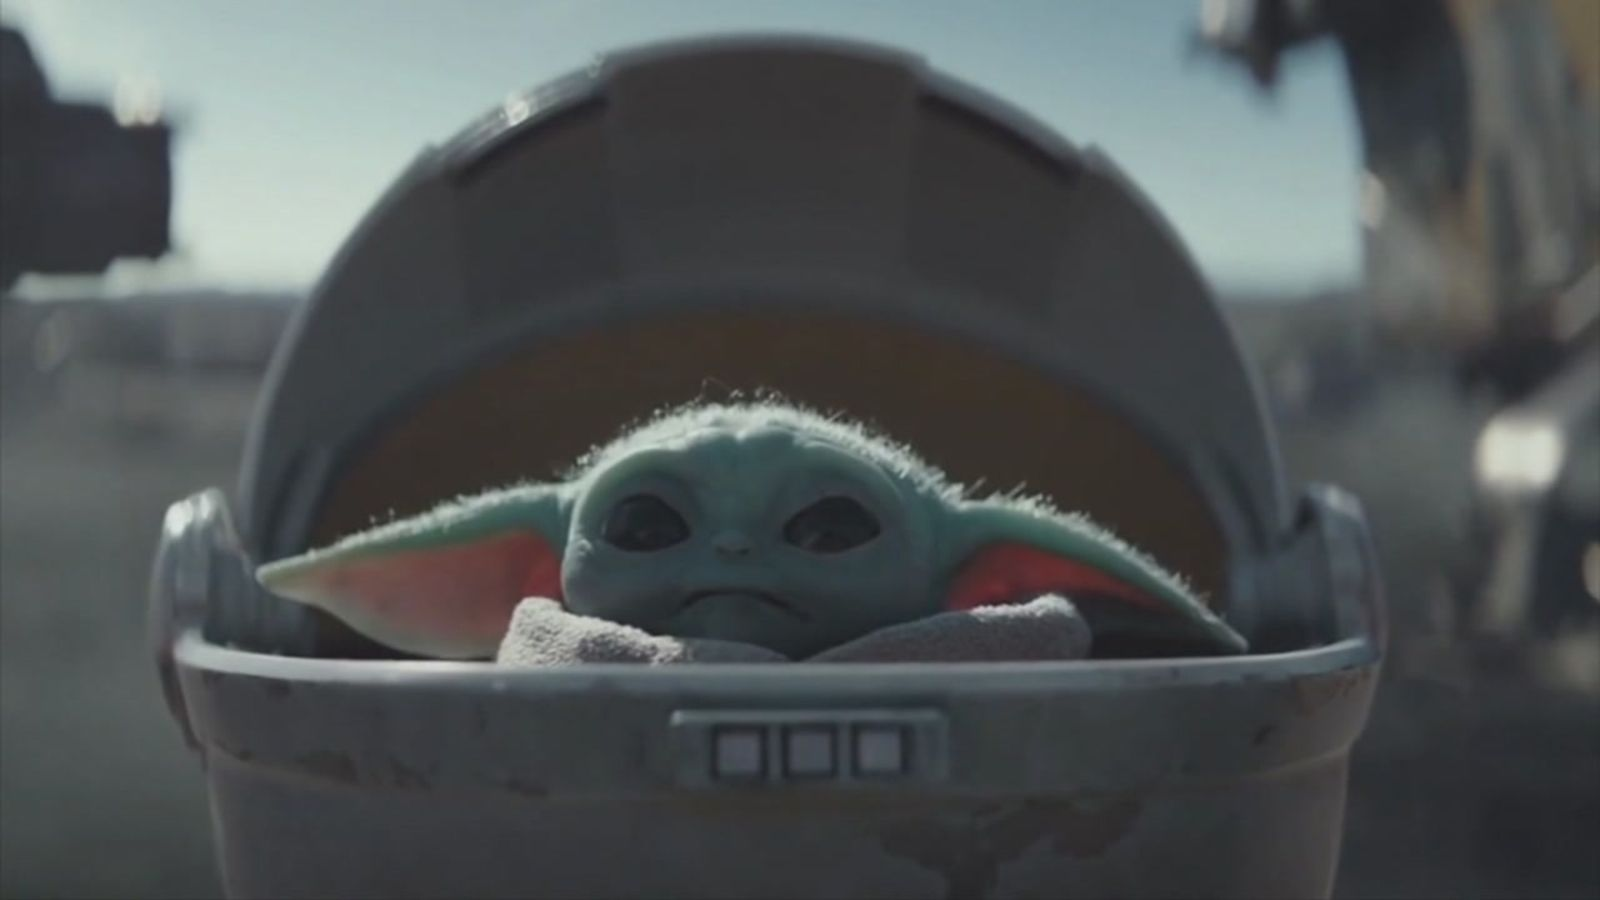 We Finally Know Baby Yoda S Real Name And To The Disappointment Of Many It S Not Actually Baby Yoda Yoda Mandalorian Baby Car Seats